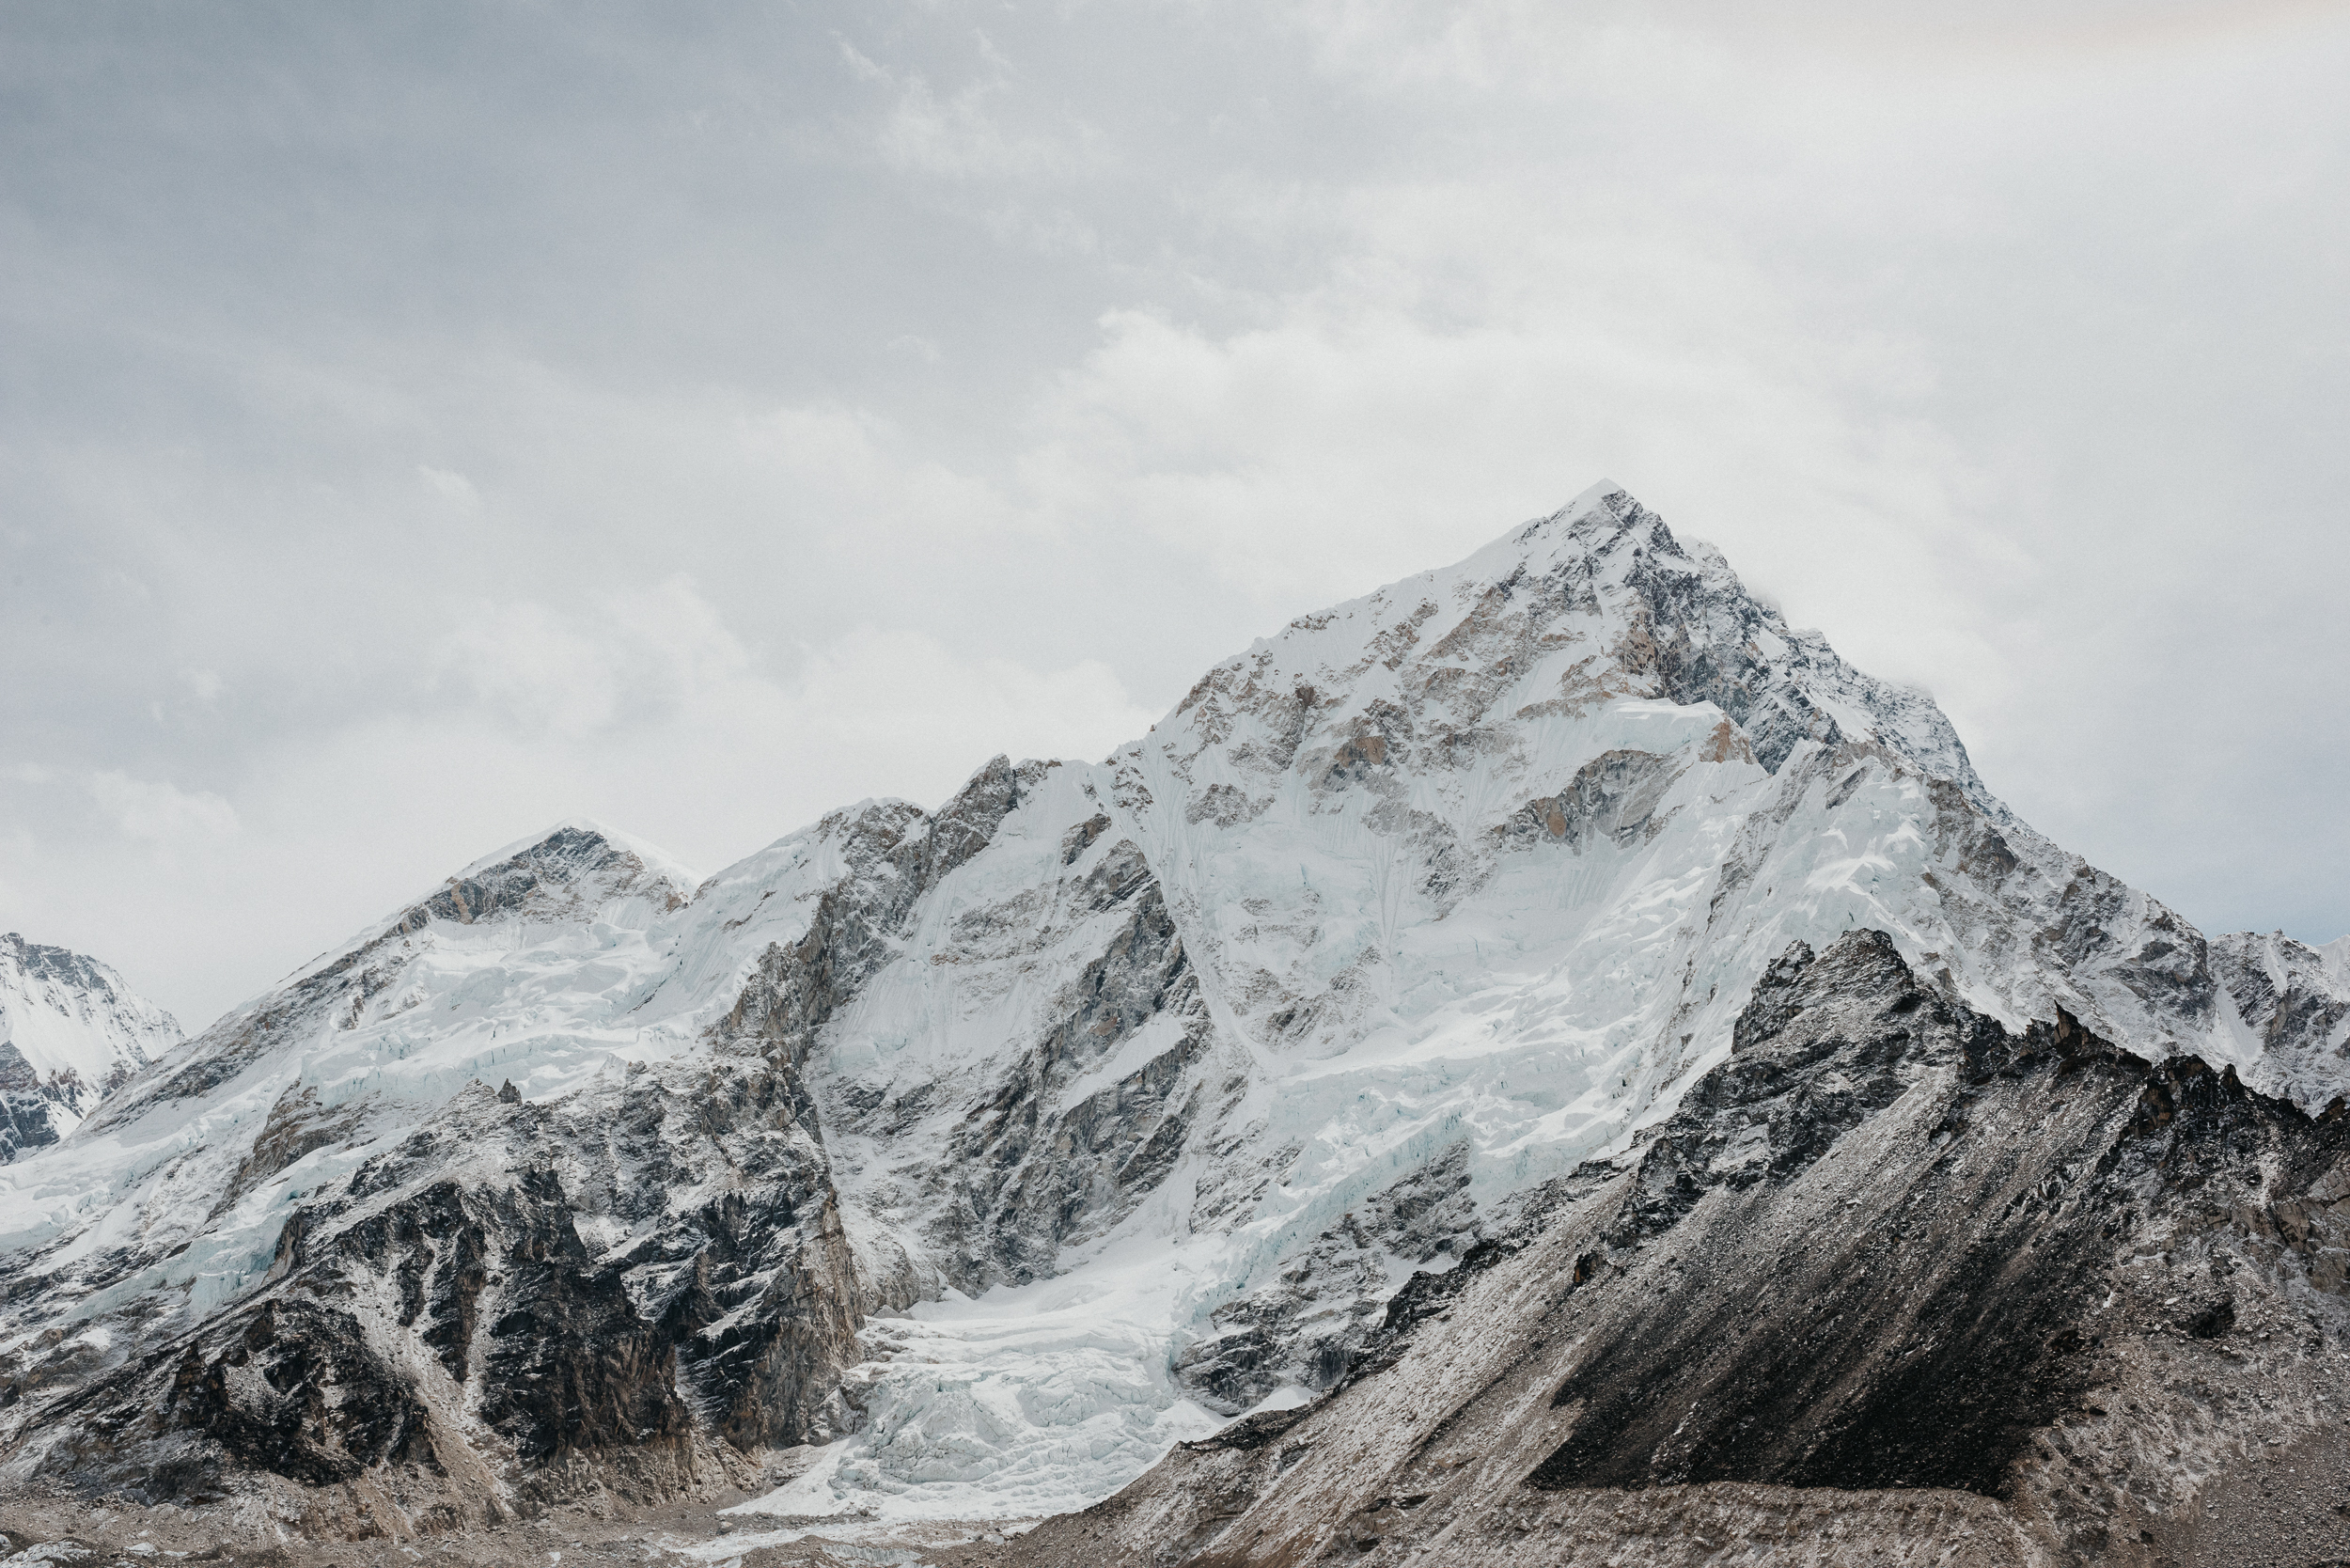 Nepal_EverestBaseCamp_2019_TaraShupe_Photography_DSC_4172.jpg